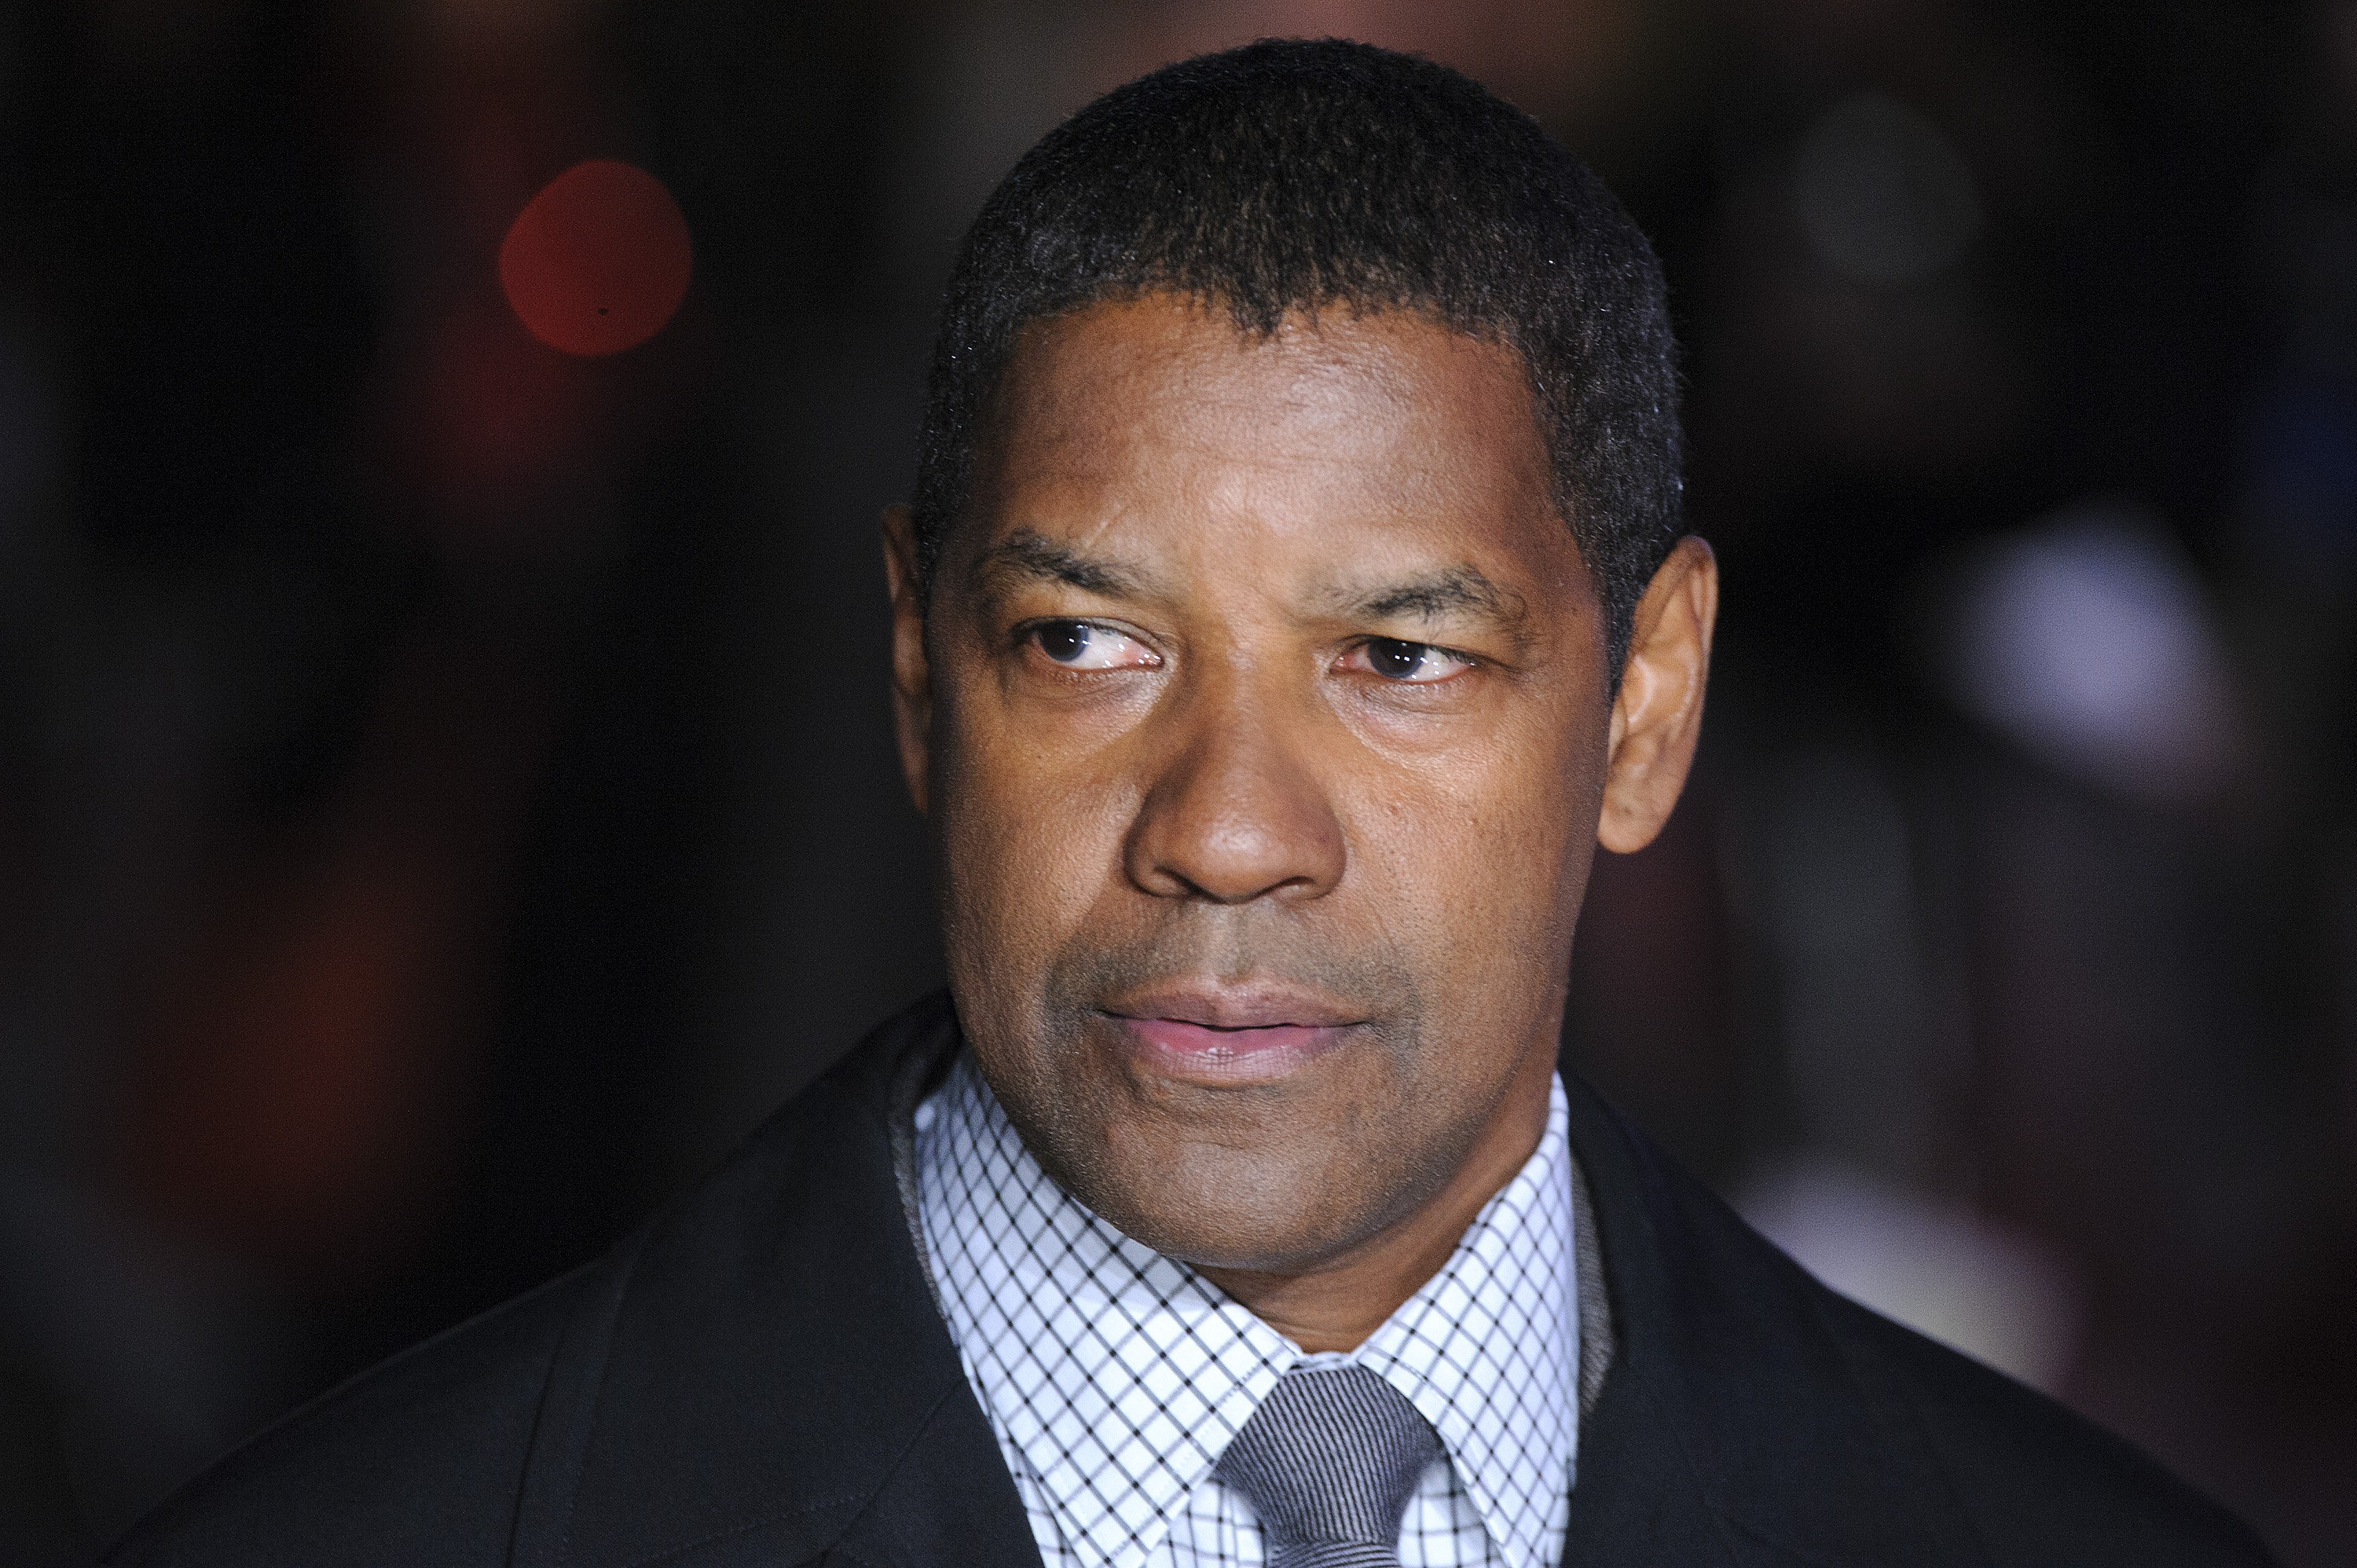 O ator Denzel Washington. (Foto: Getty Images)